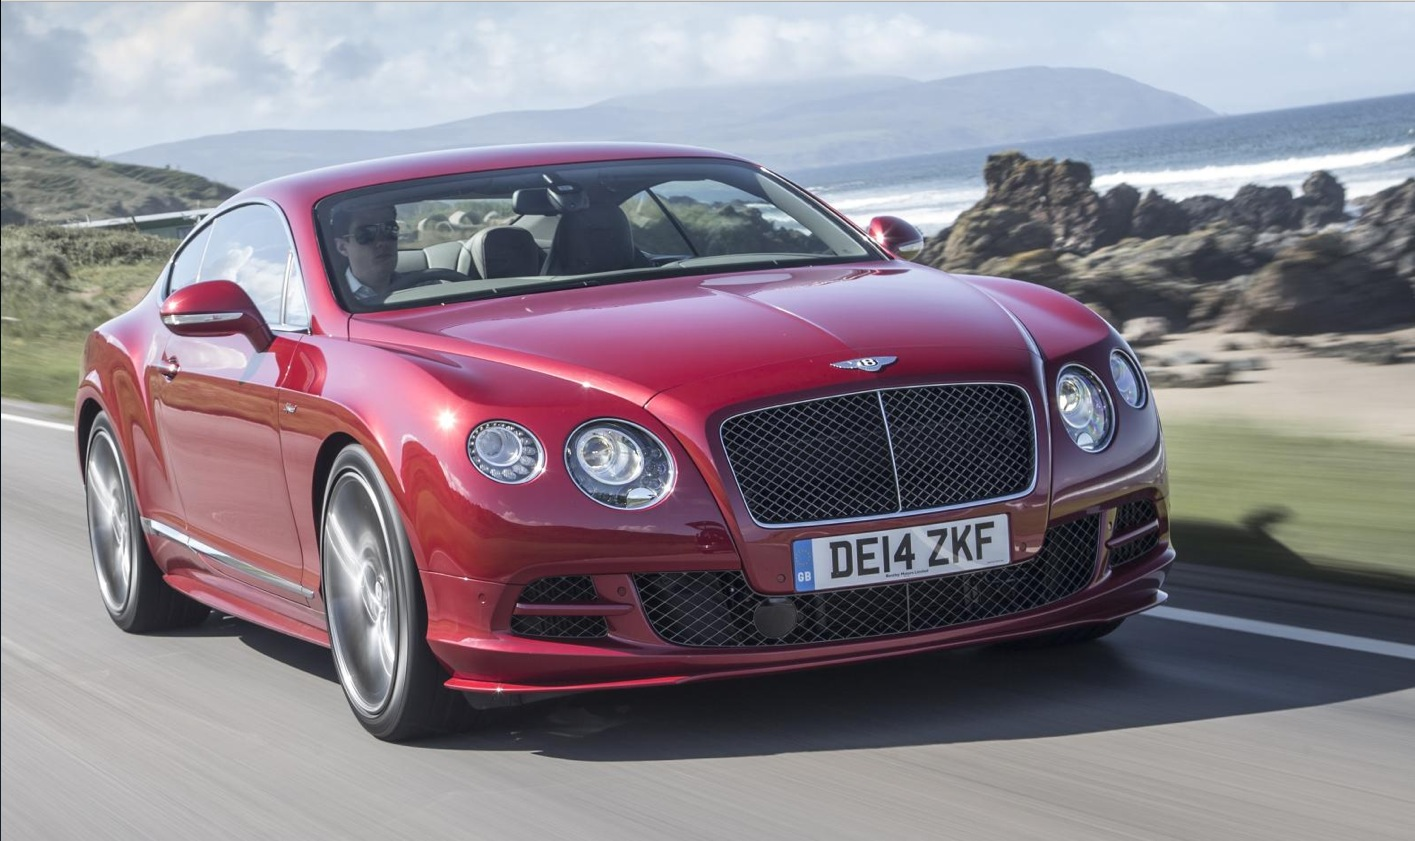 Bentley Sold 2 7 Times More Cars Than Rolls Royce In 2014